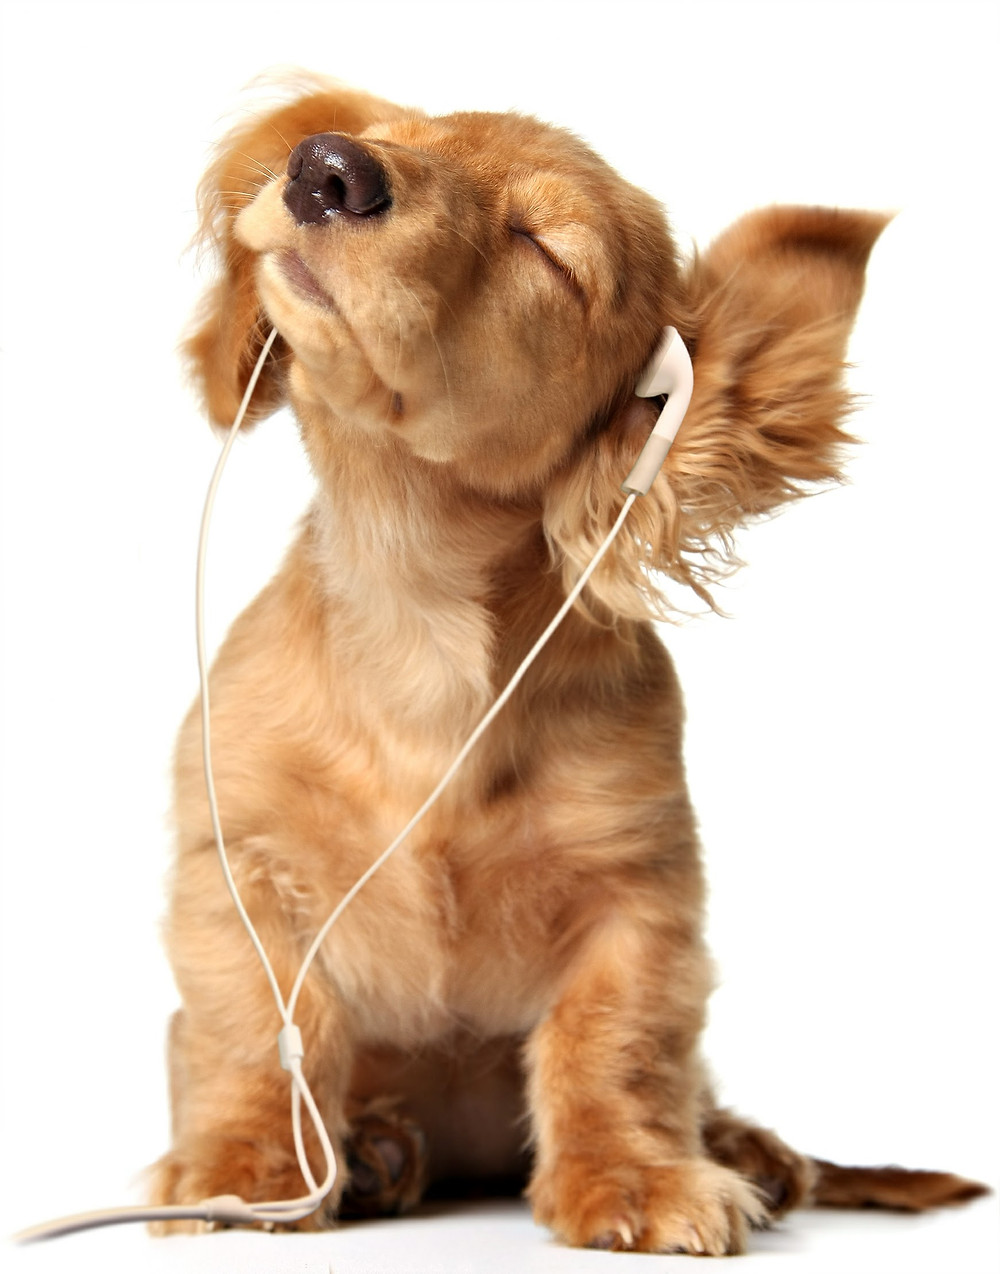 Photo of a dog listening to earbuds